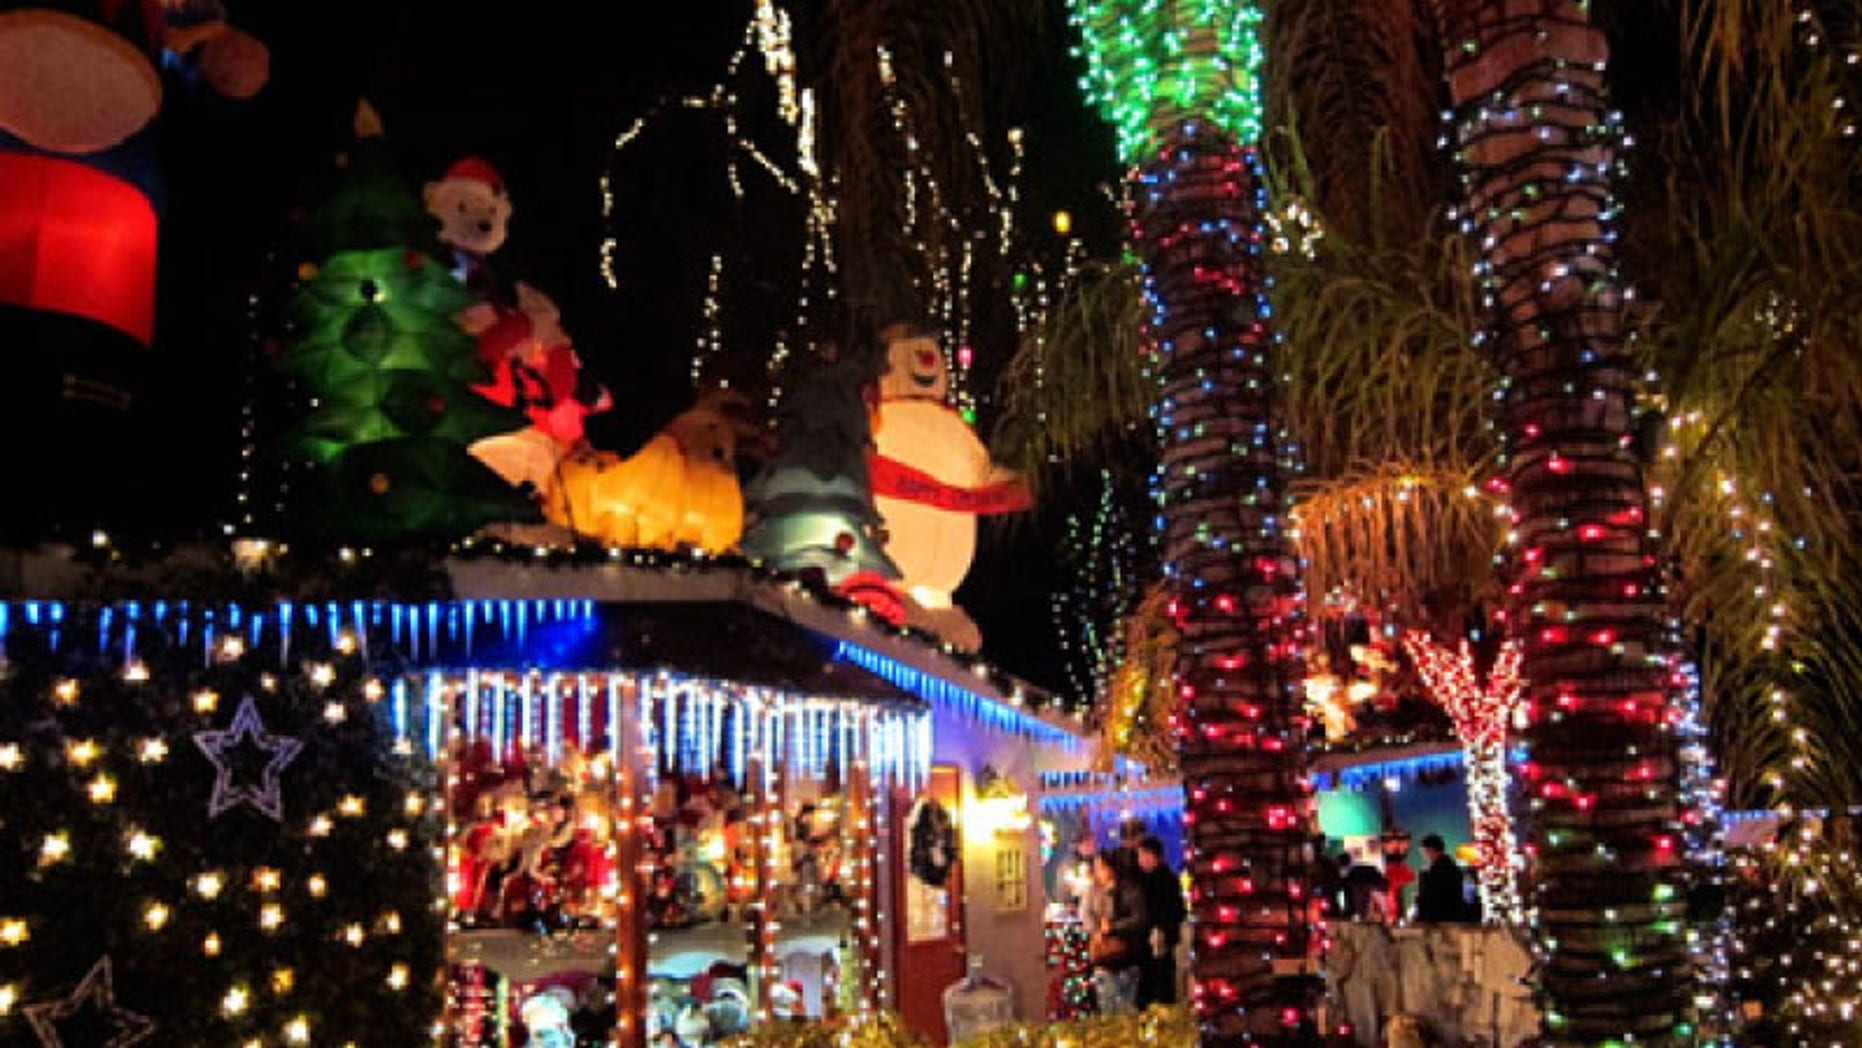 Christmas light display before it was taken down due to a Phoenix crackdown.